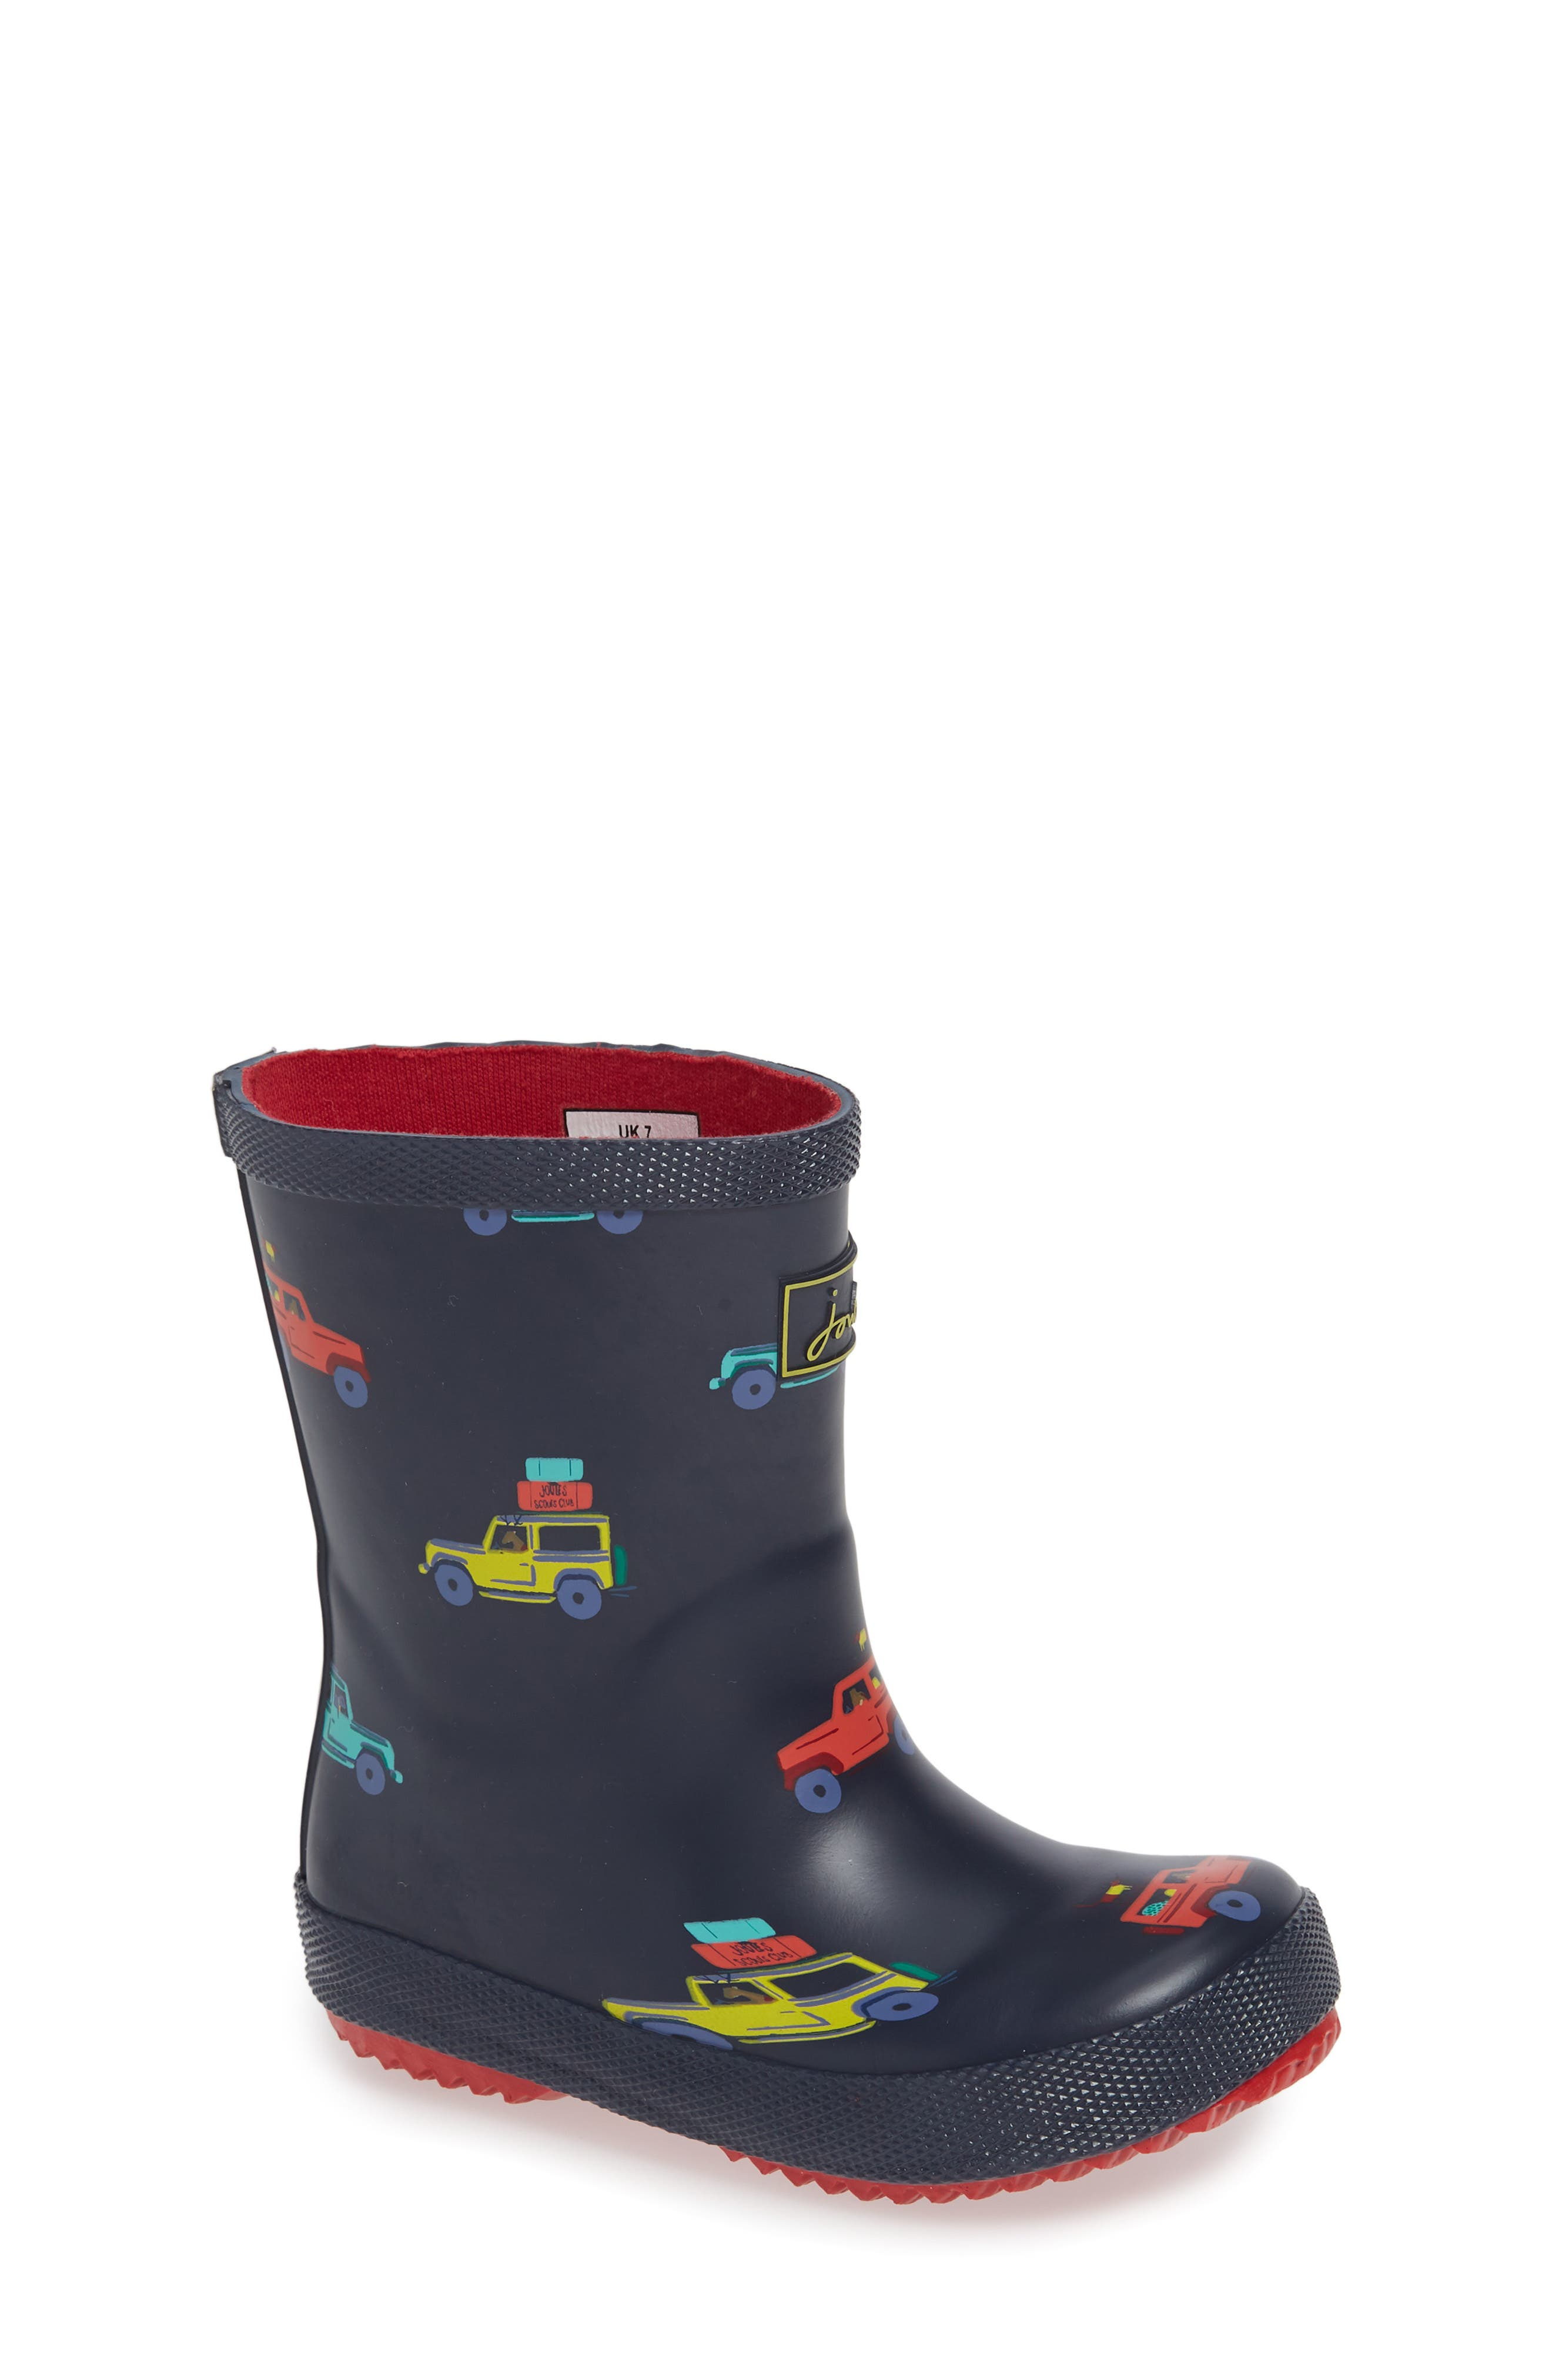 Print Welly Rain Boot,                             Main thumbnail 1, color,                             NAVY SCOUT AND ABOUT